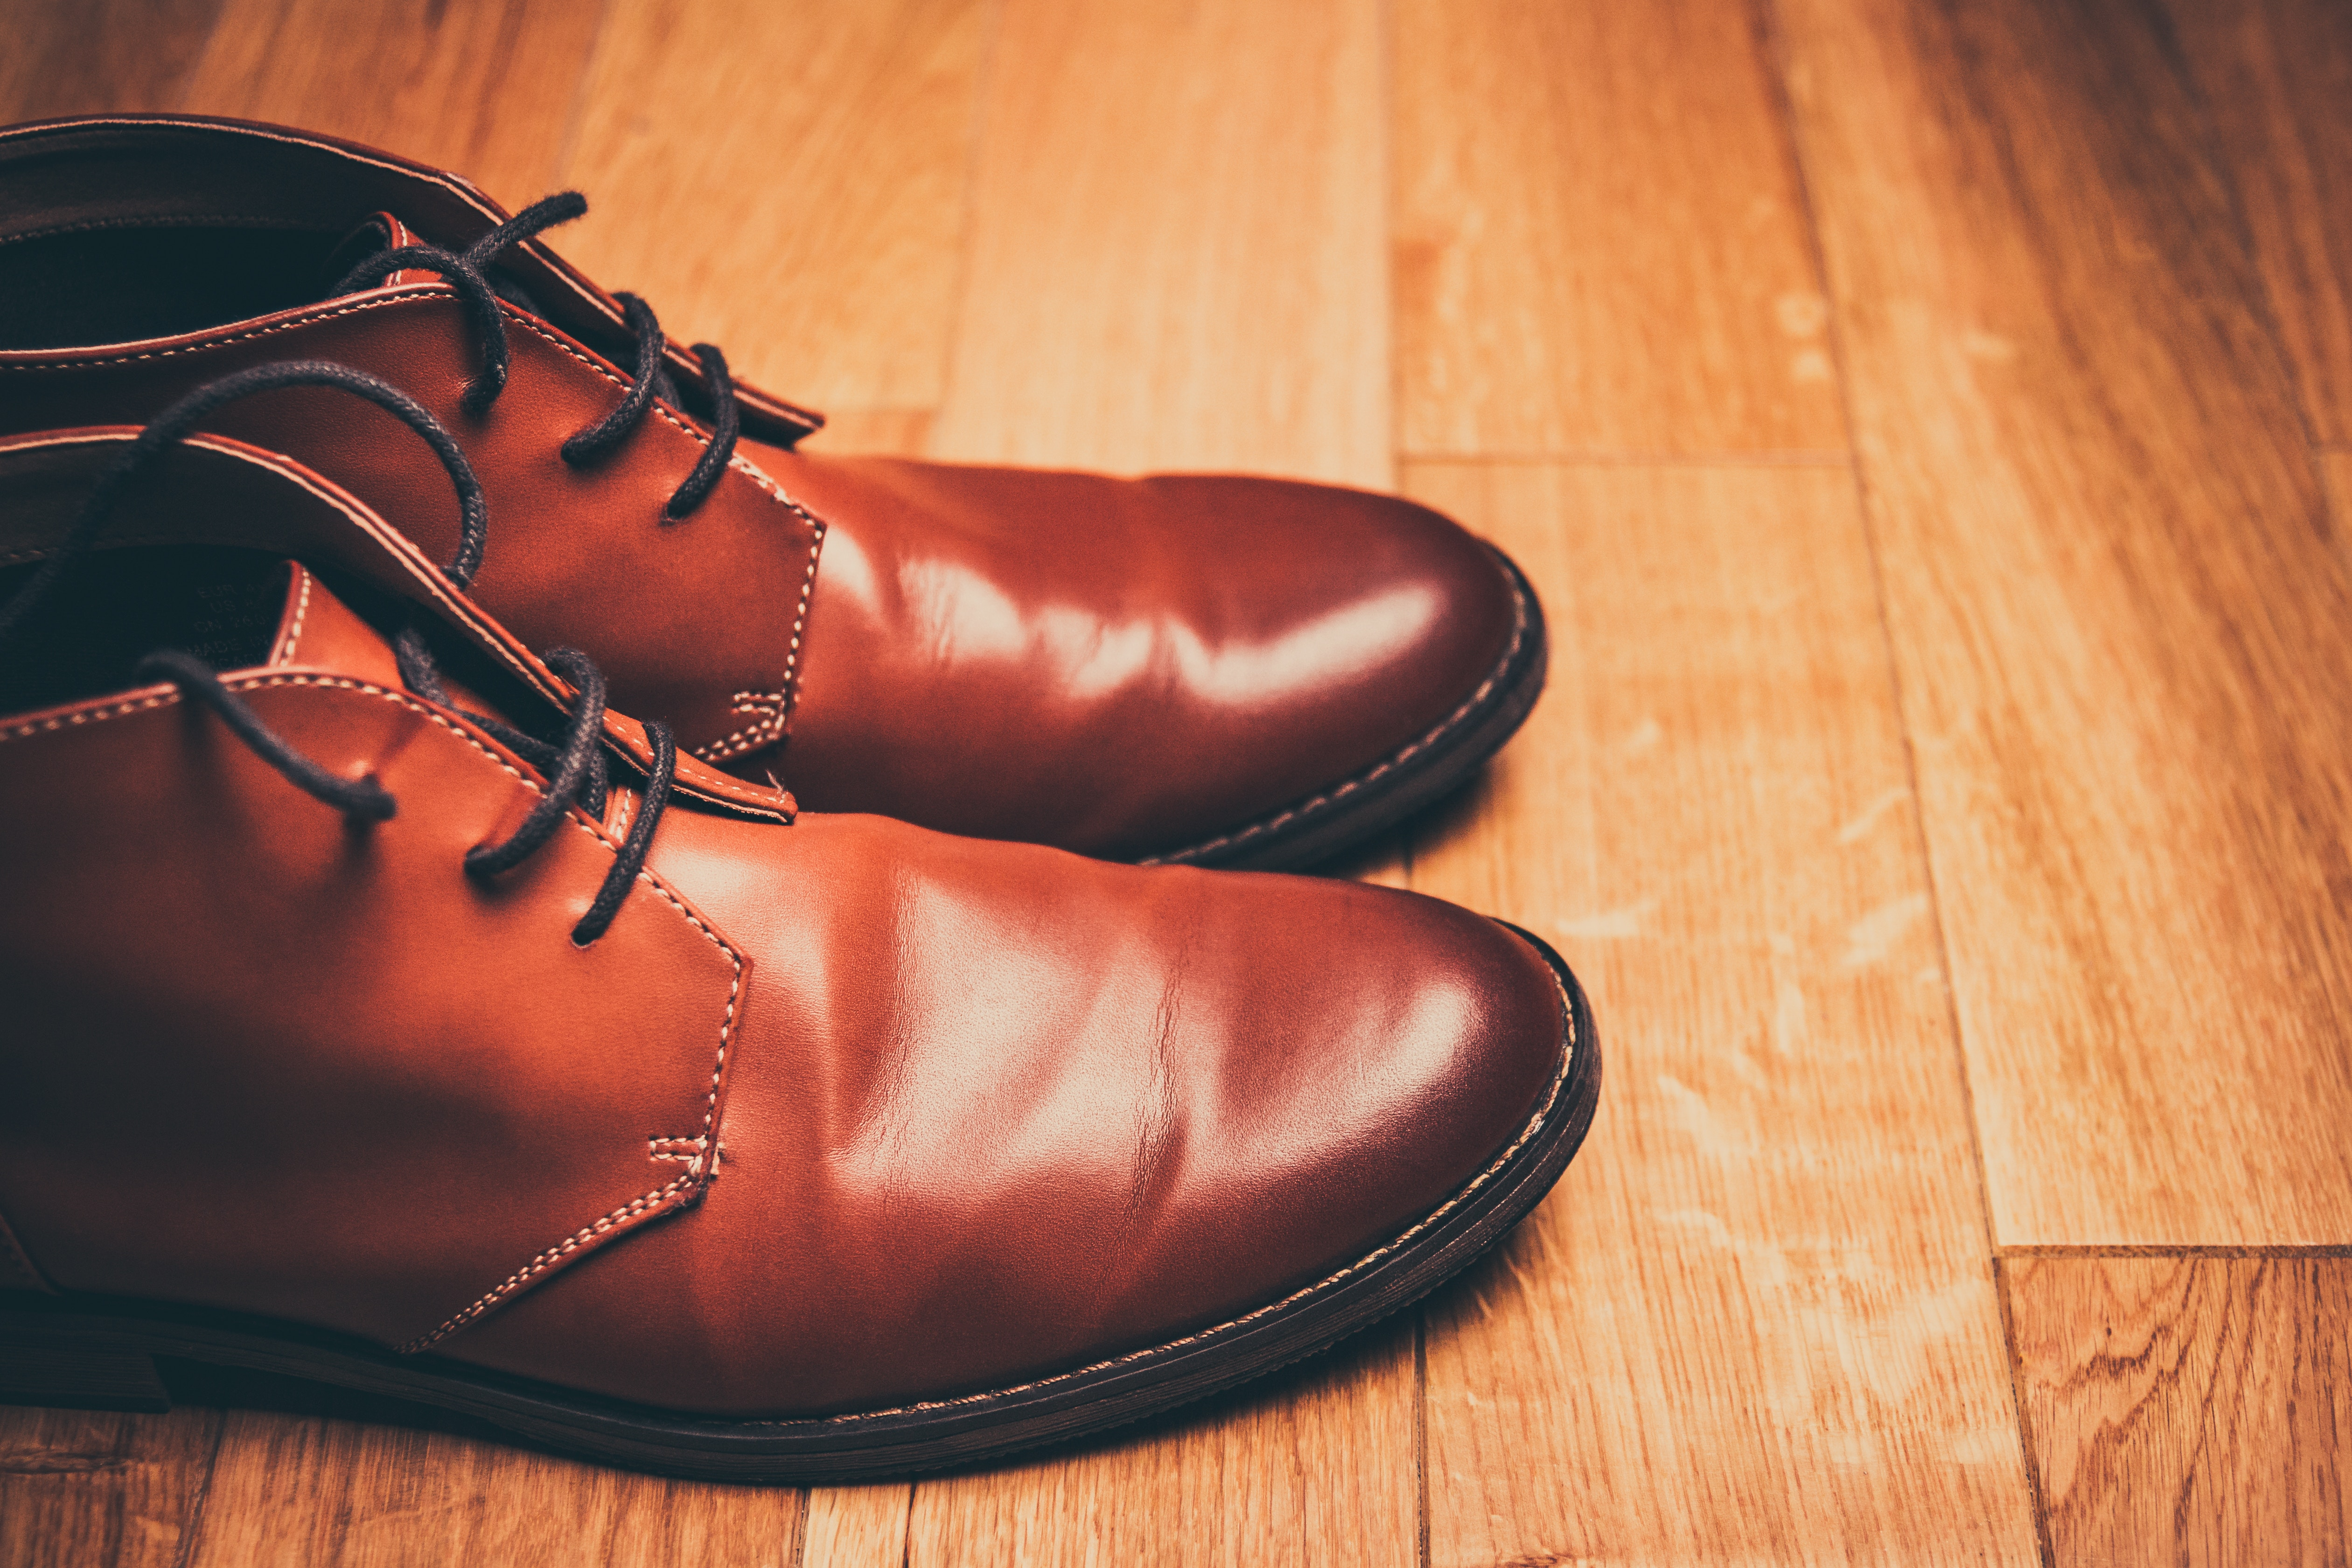 Leather boots, a style essential for the modern gentleman